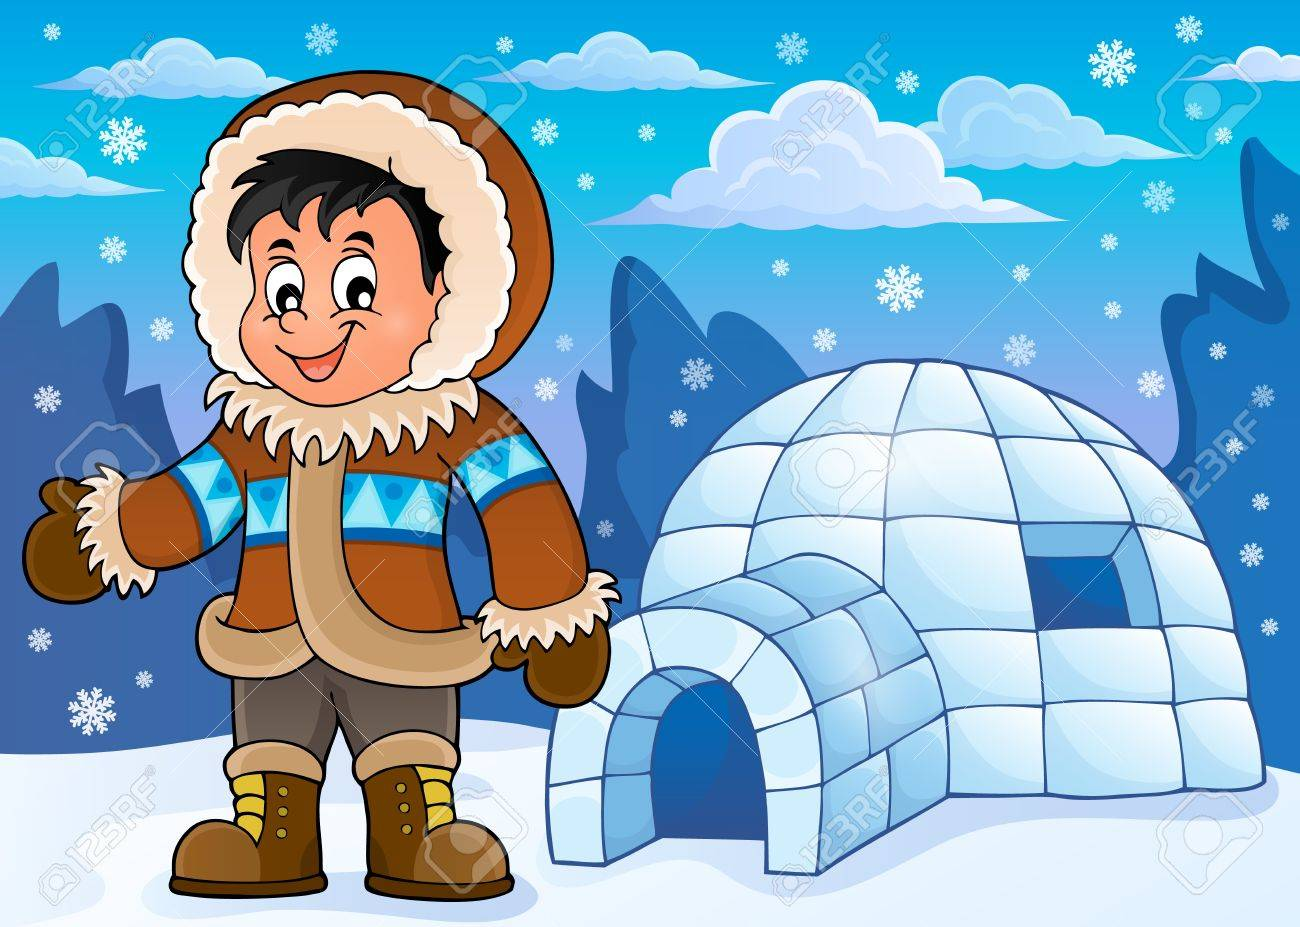 inuit theme image 2 vector illustration royalty free cliparts